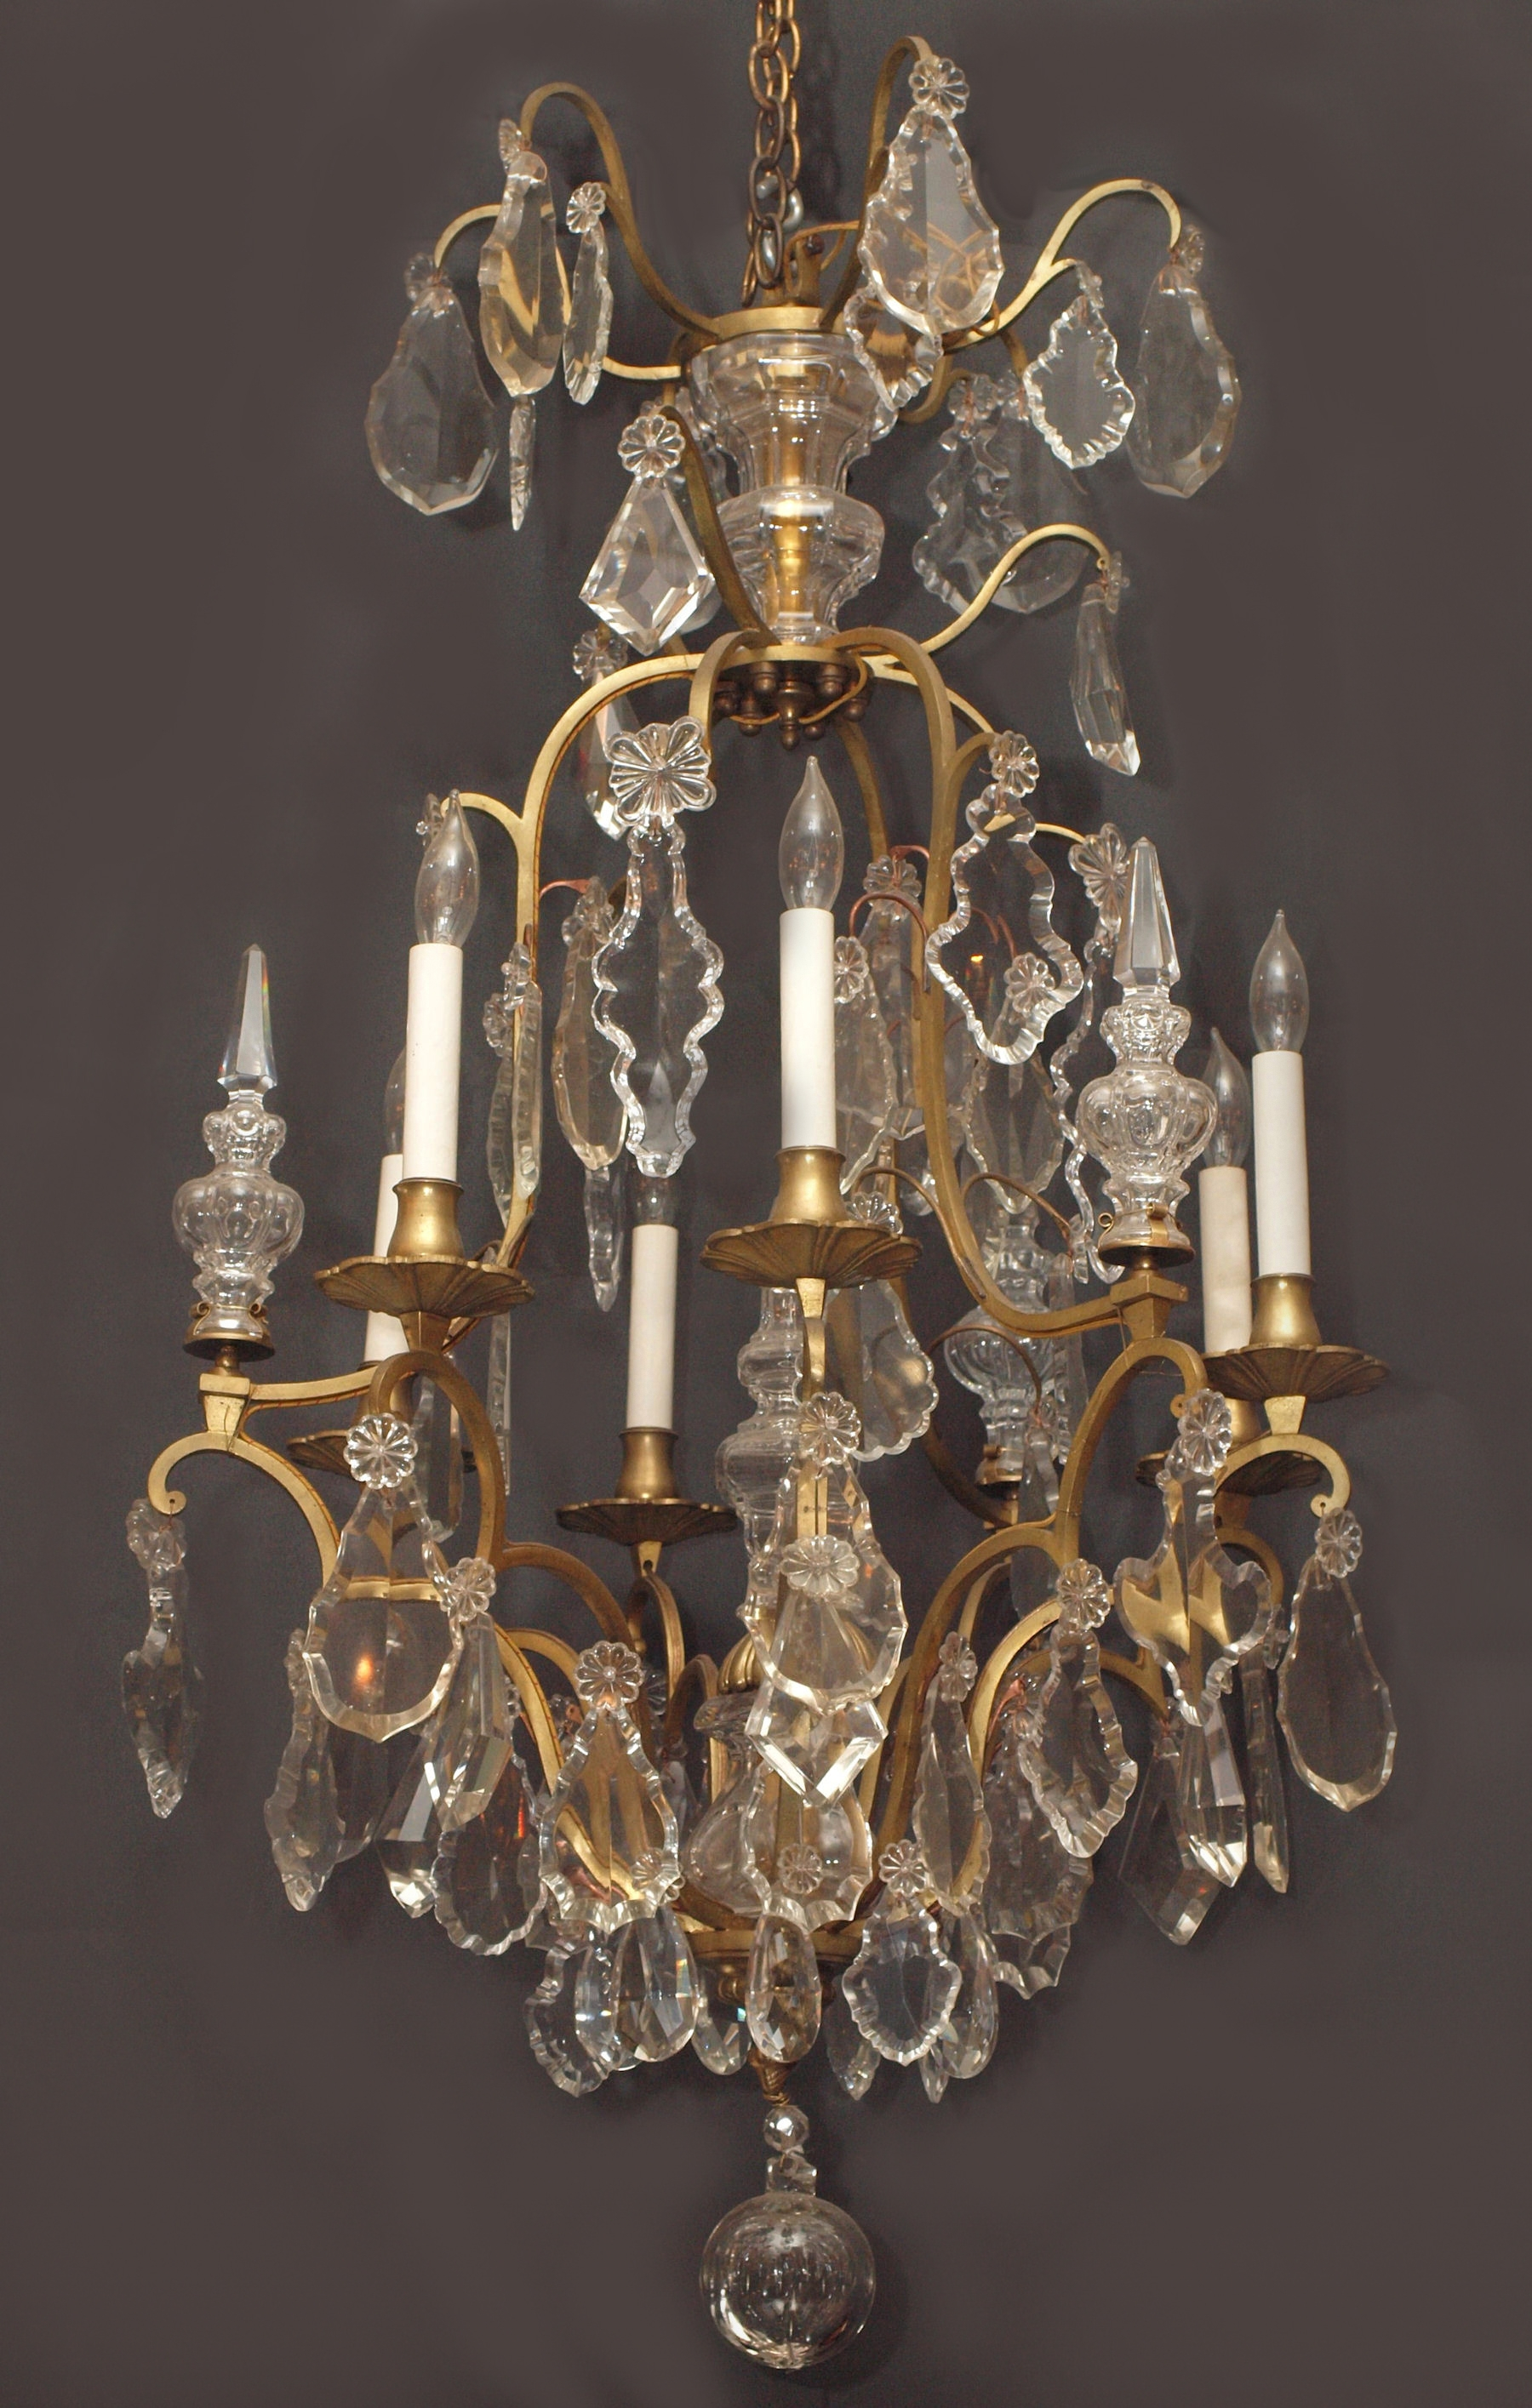 Antiques Classifieds Antiques Antique Lamps And Lighting Within Antique Chandeliers (Image 7 of 15)